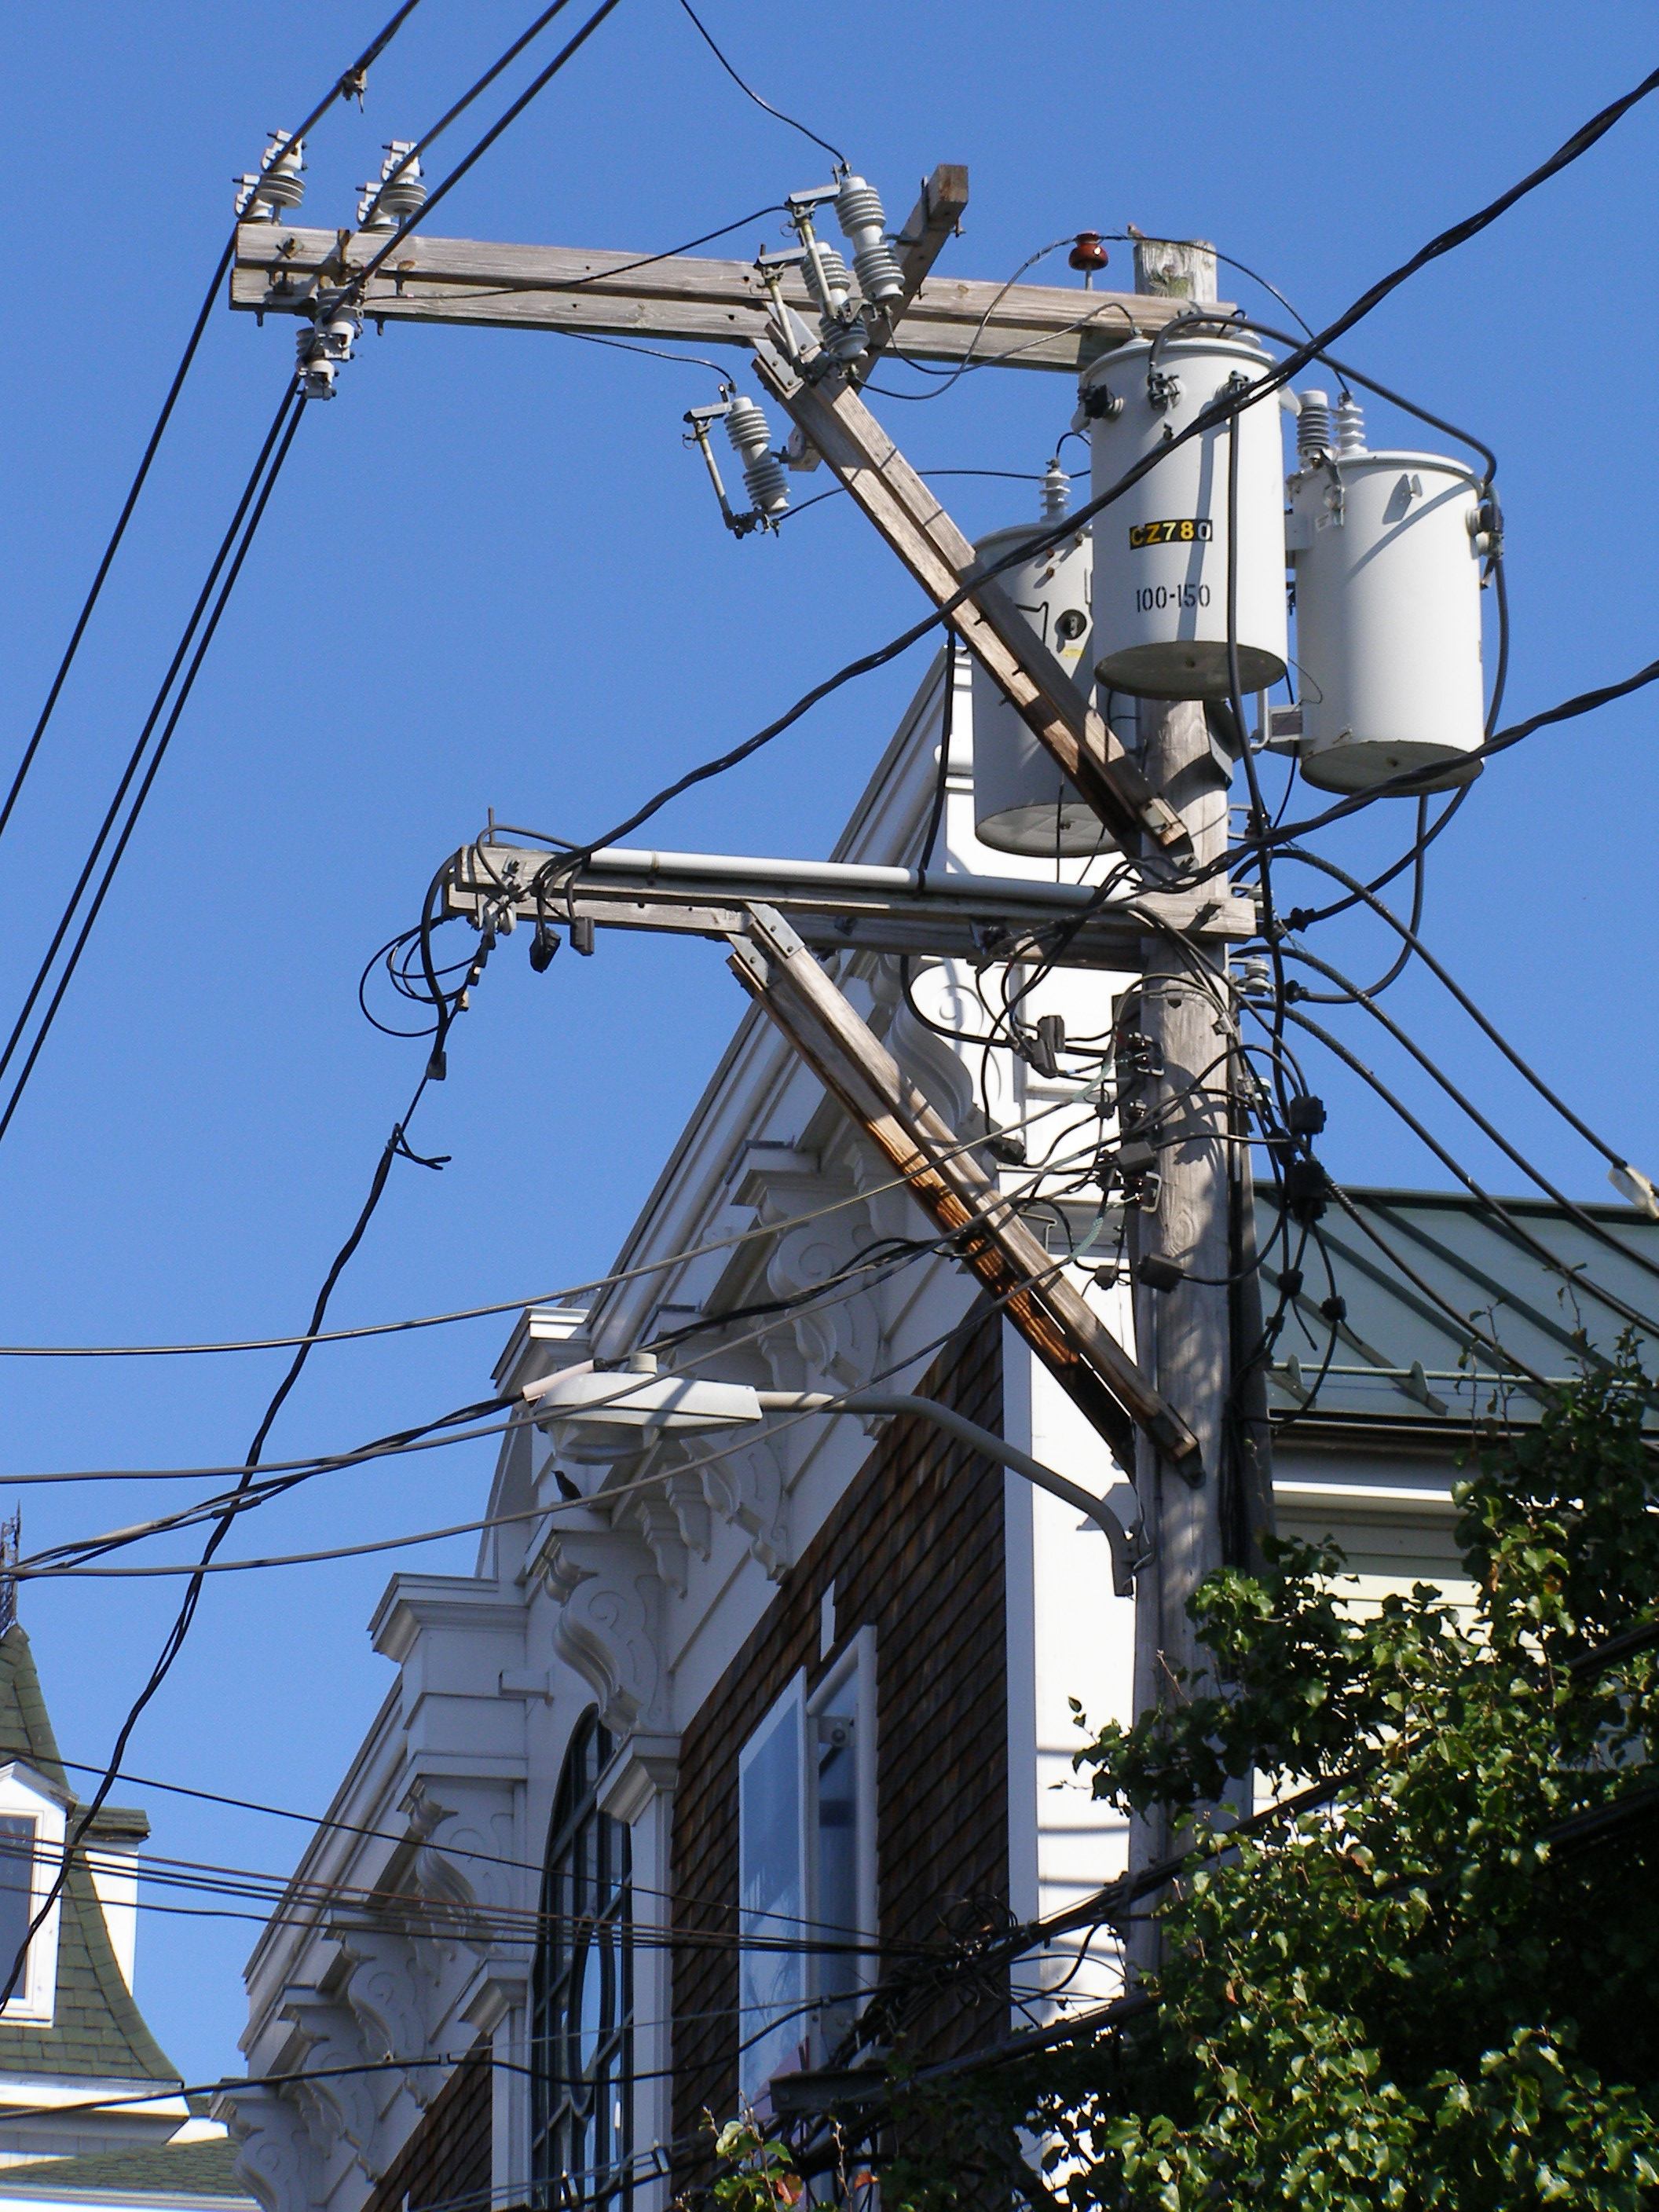 dateiprovincetown technology miraclejpg � wikipedia